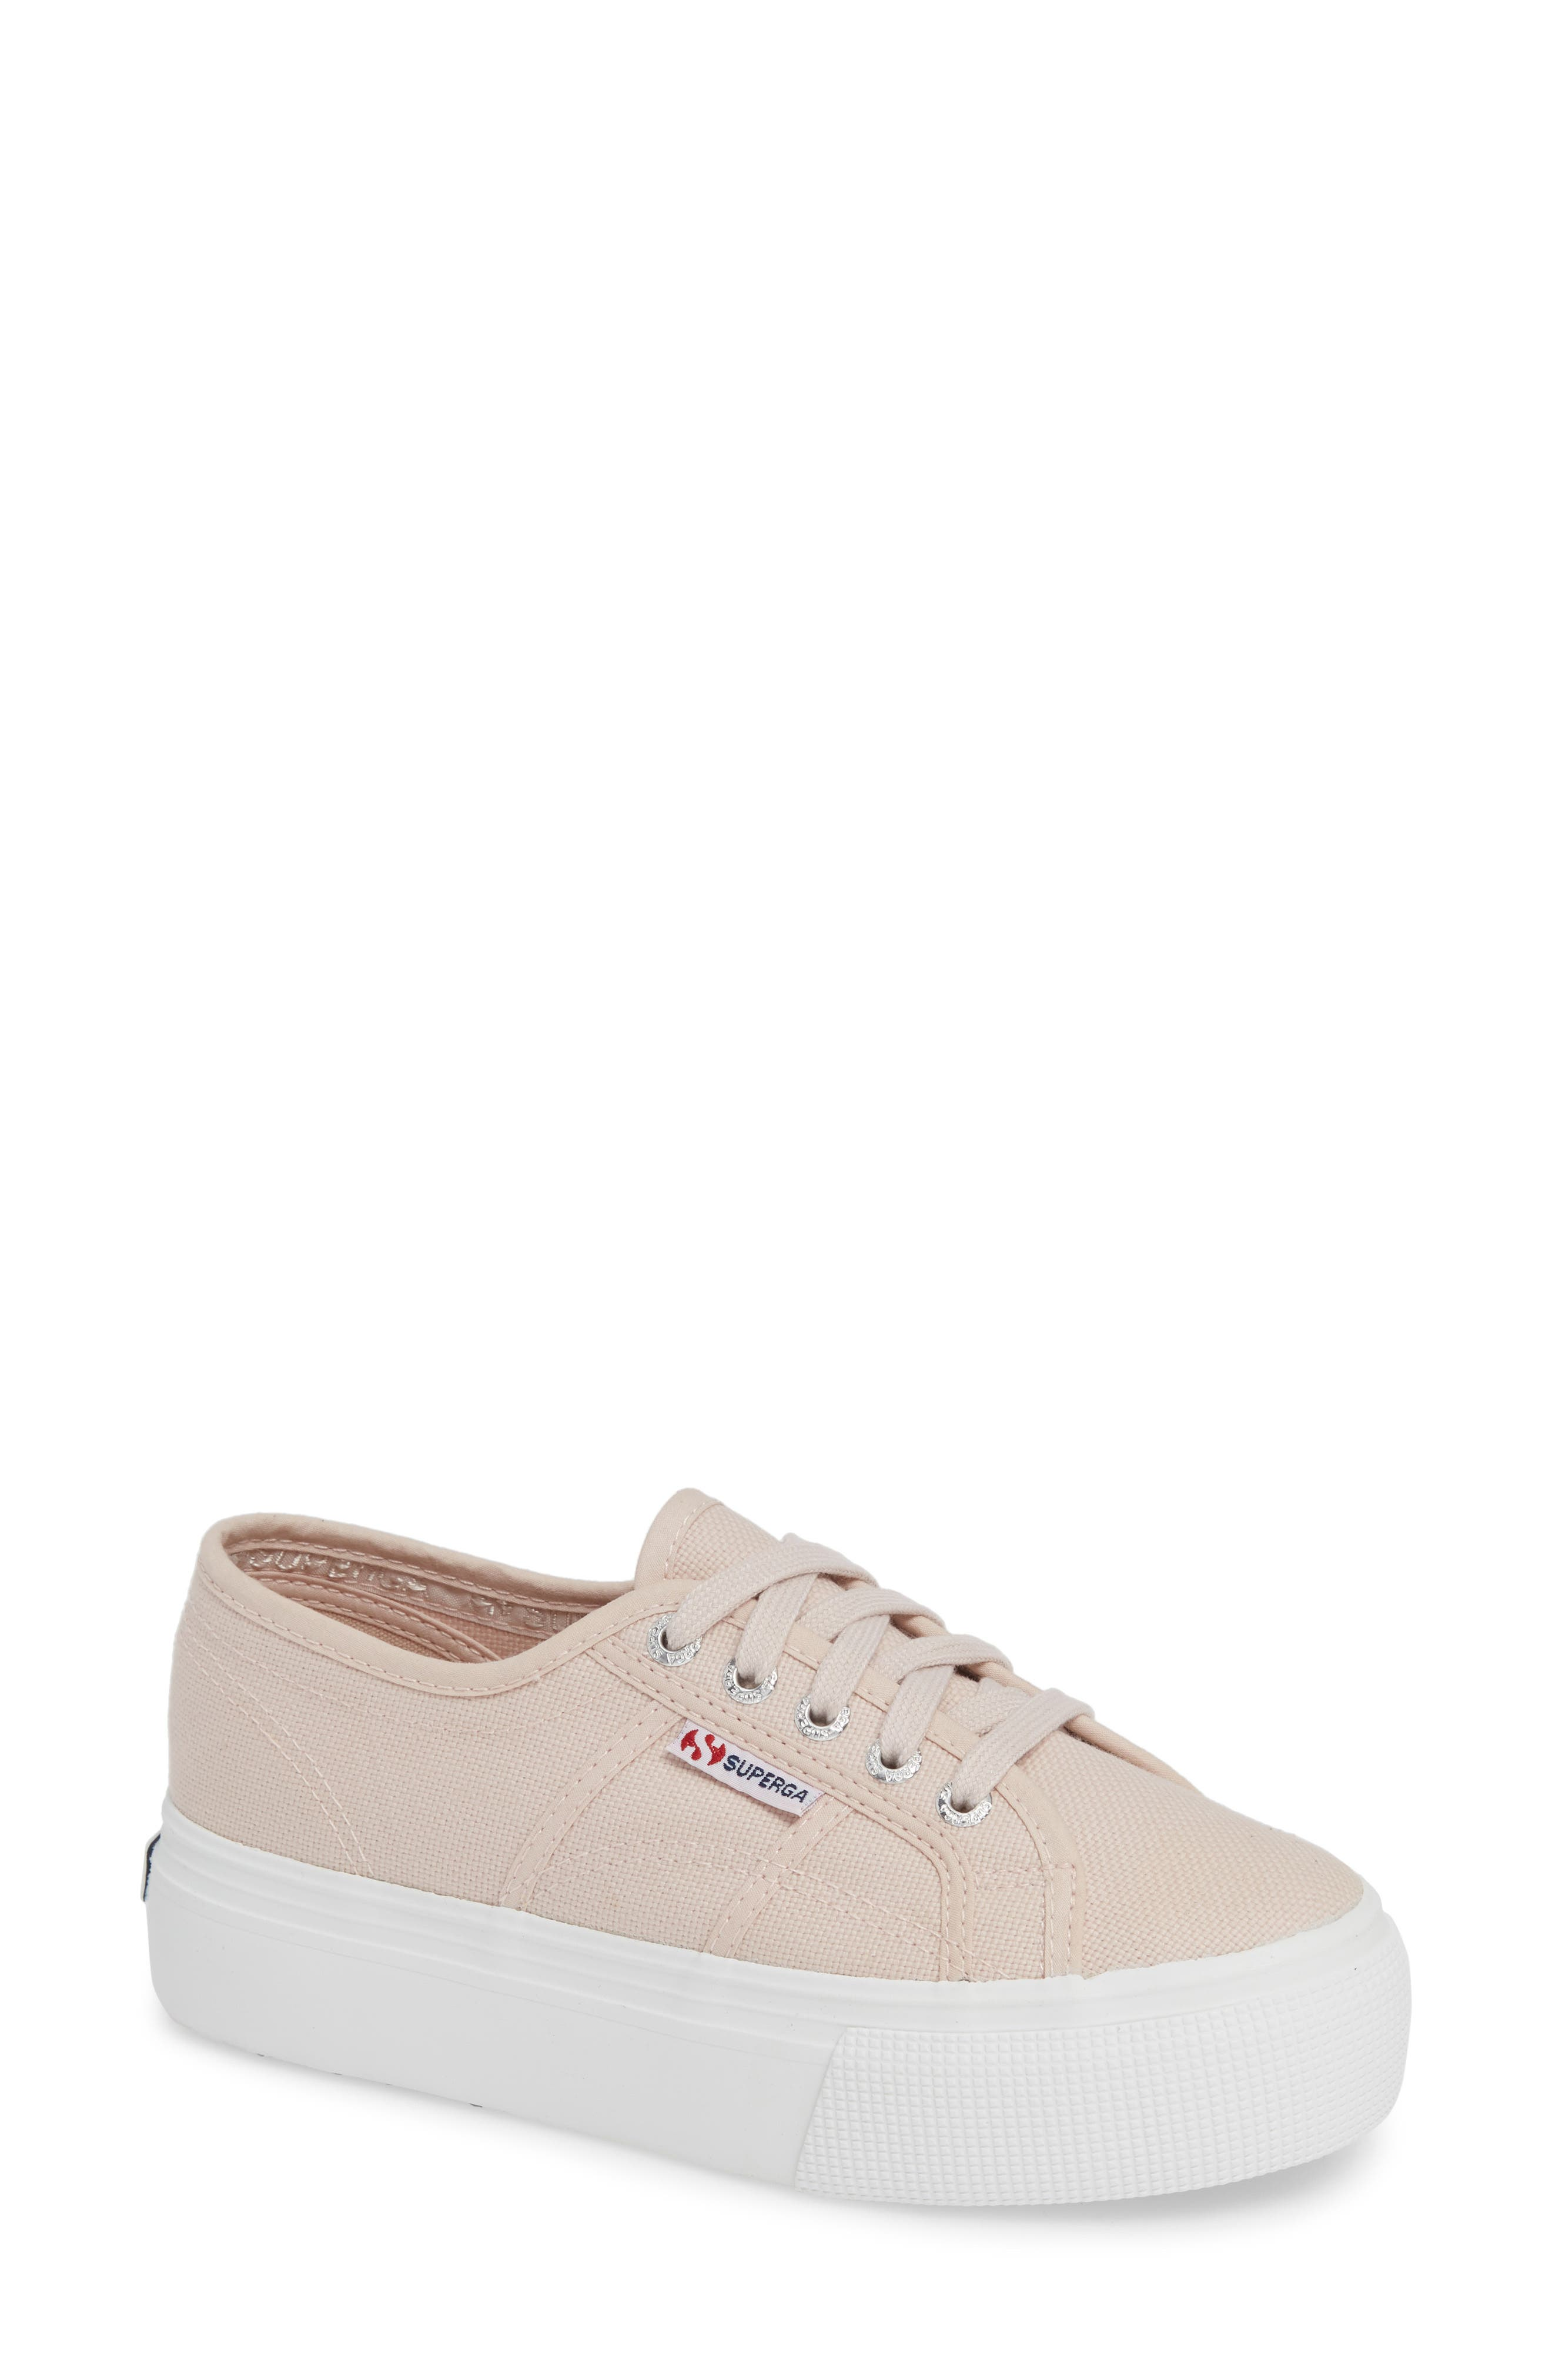 3c994a058b4 Grey Superga Shoes   Sneakers